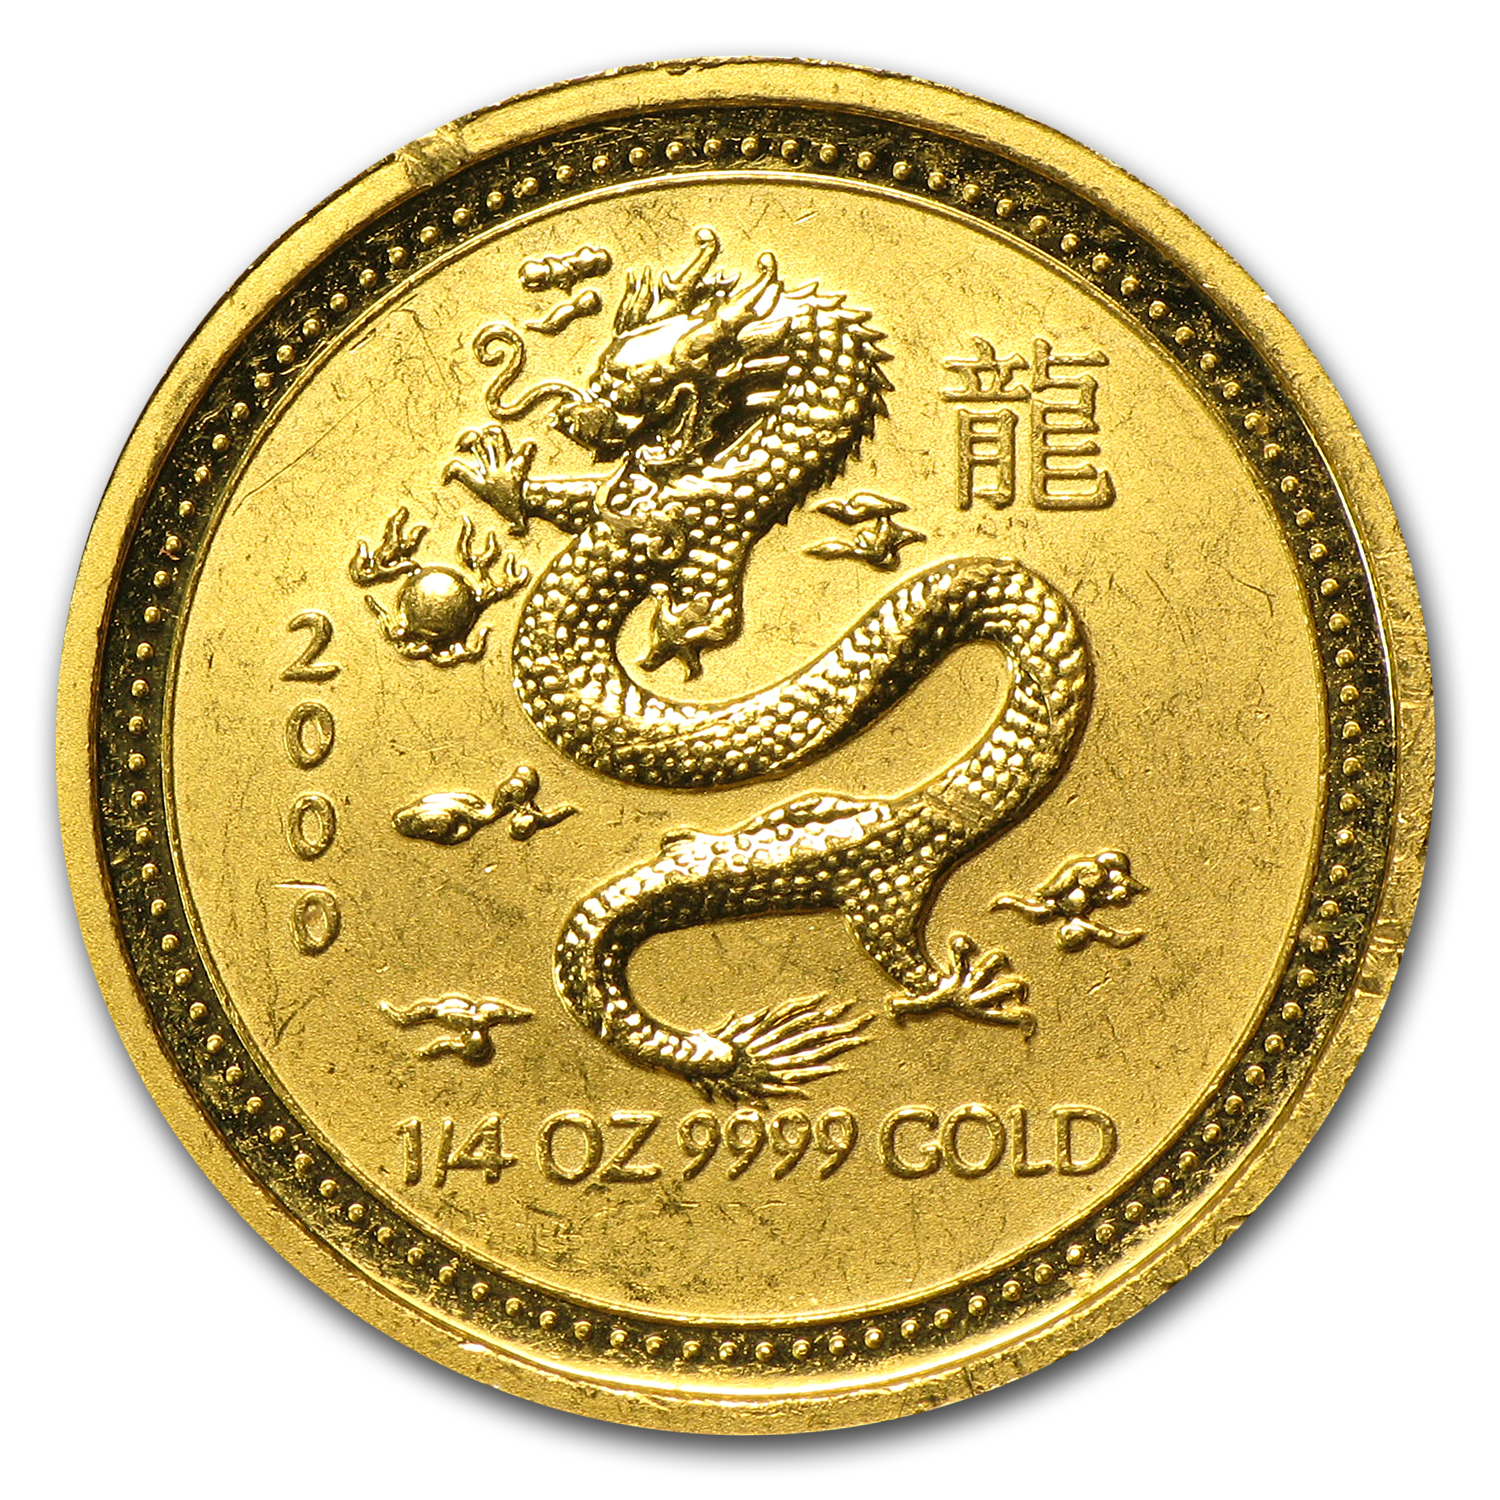 2000 1/4 oz Gold Year of the Dragon Lunar Coin (SI)(Abrasions)